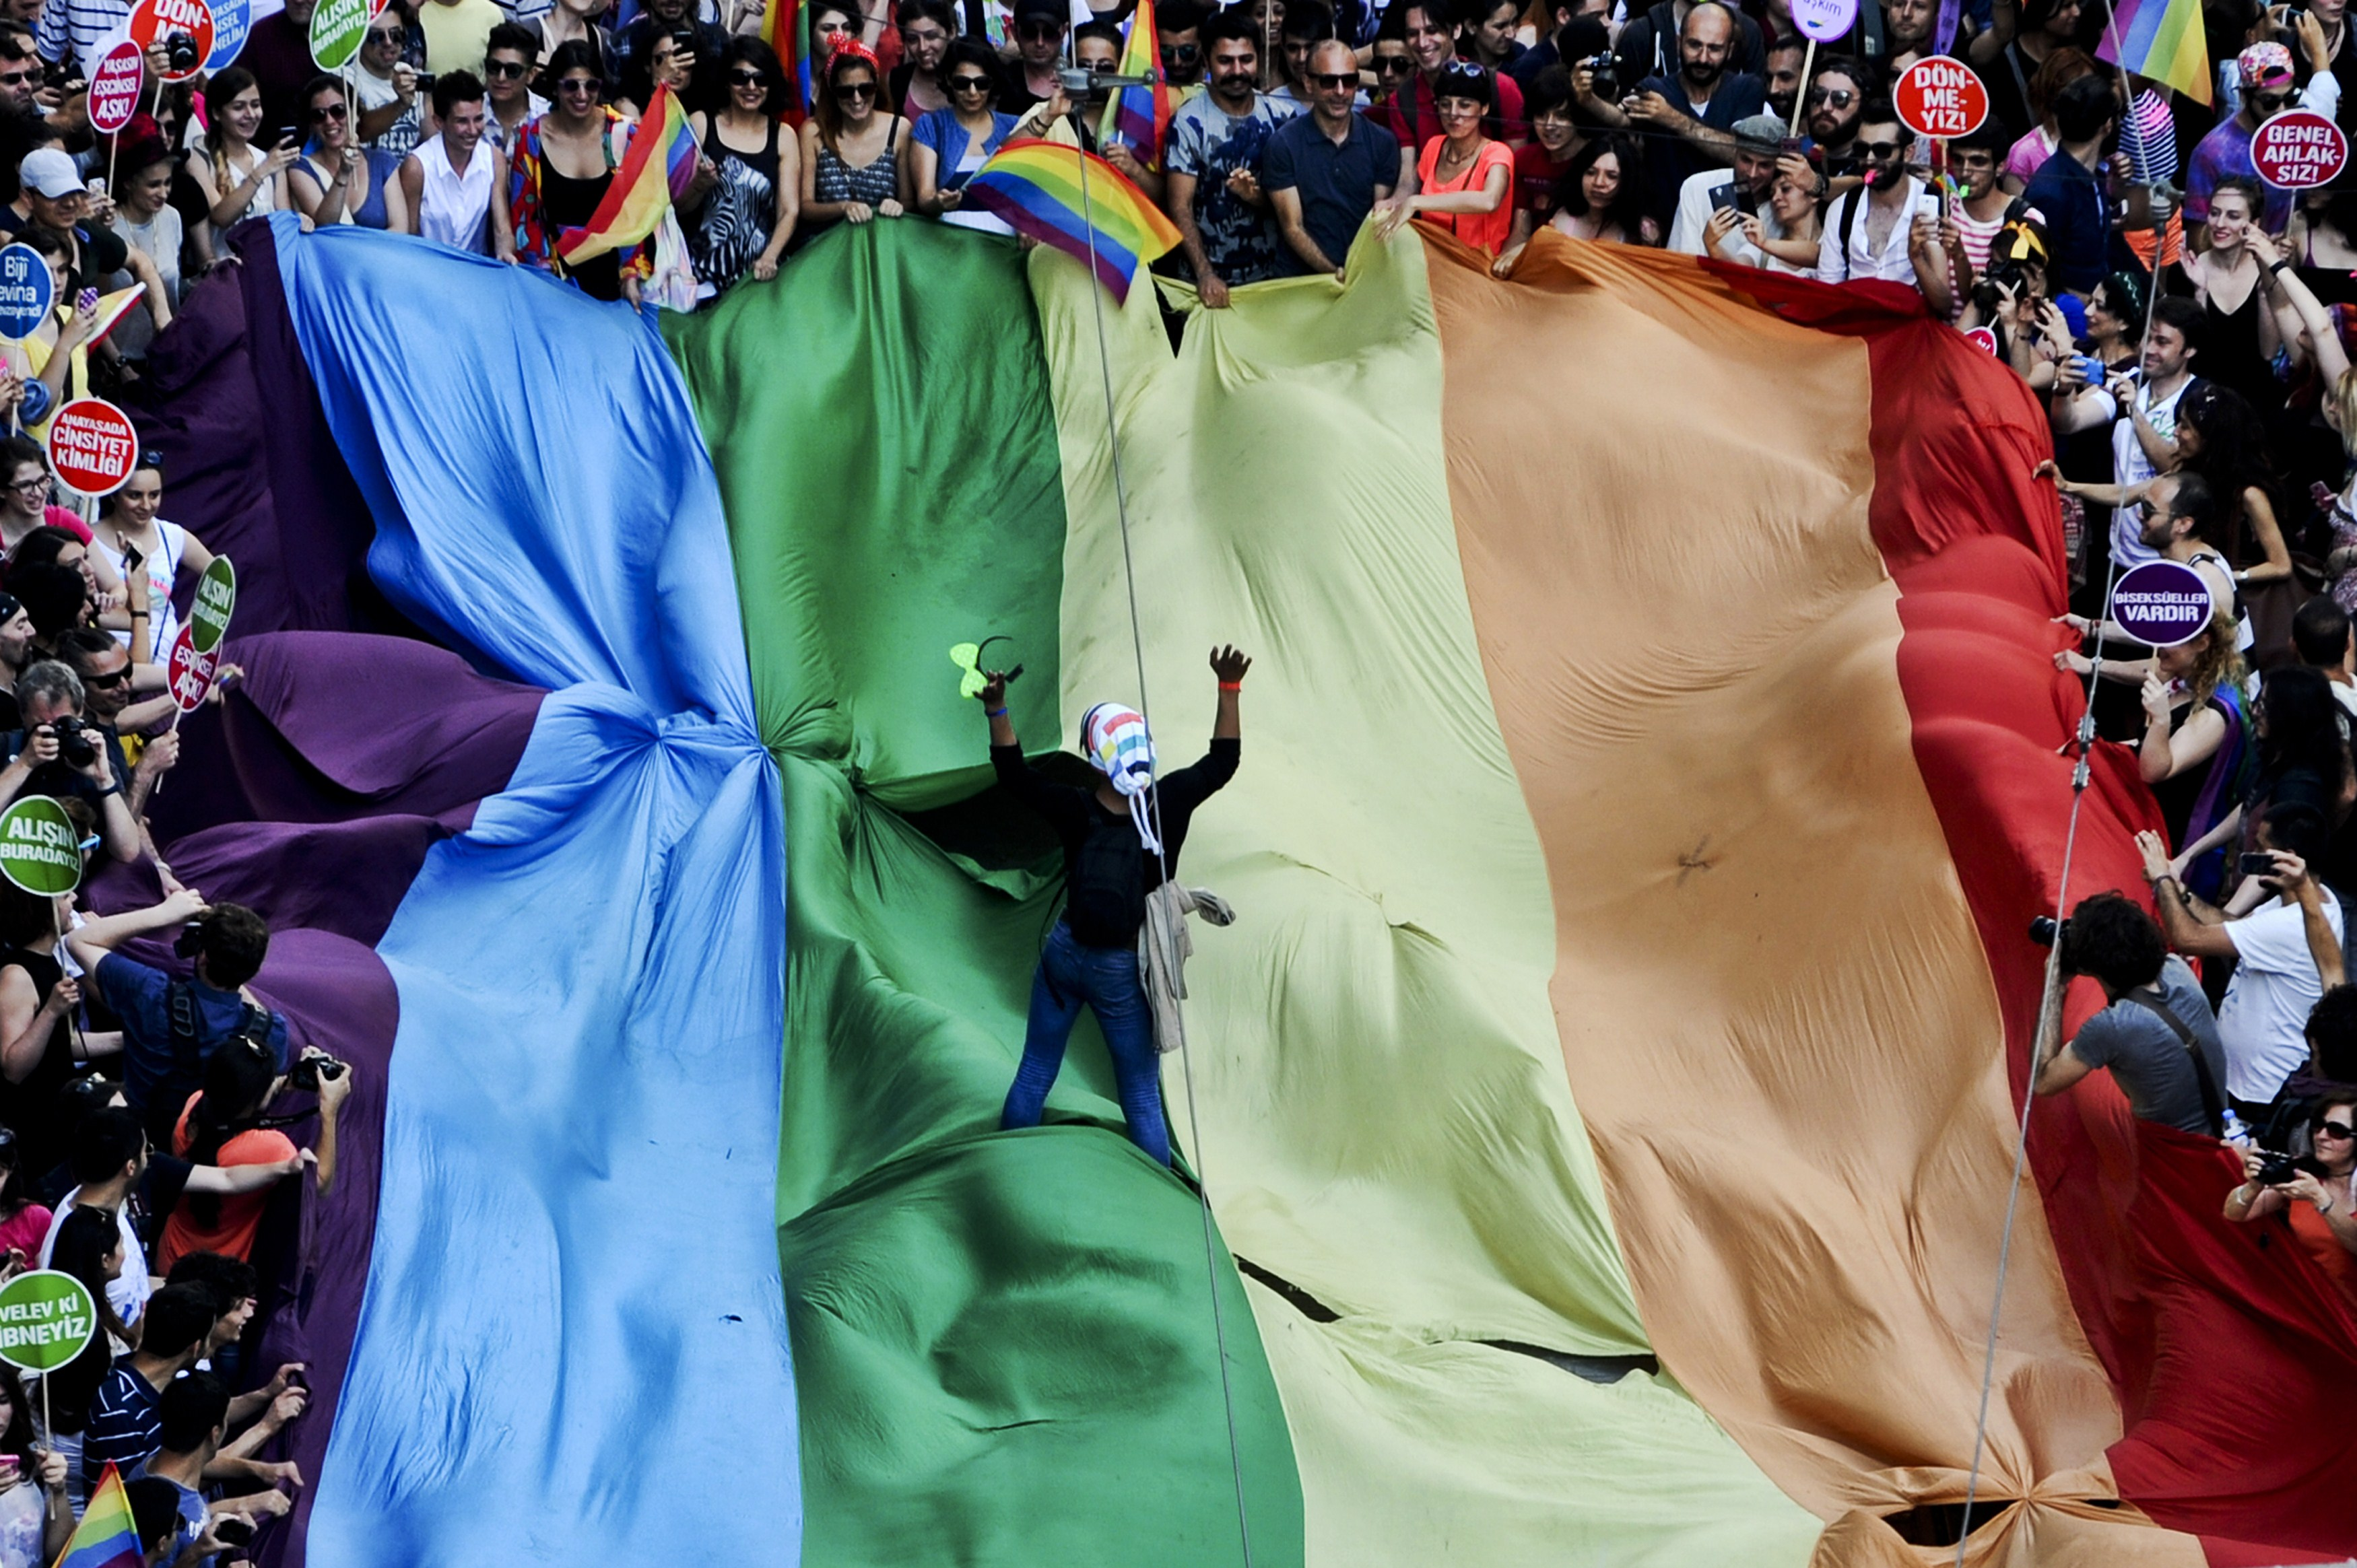 People march holding a giant rainbow flag during a gay pride parade on Istiklal Street, in Istanbul, Turkey, on June 29, 2014.